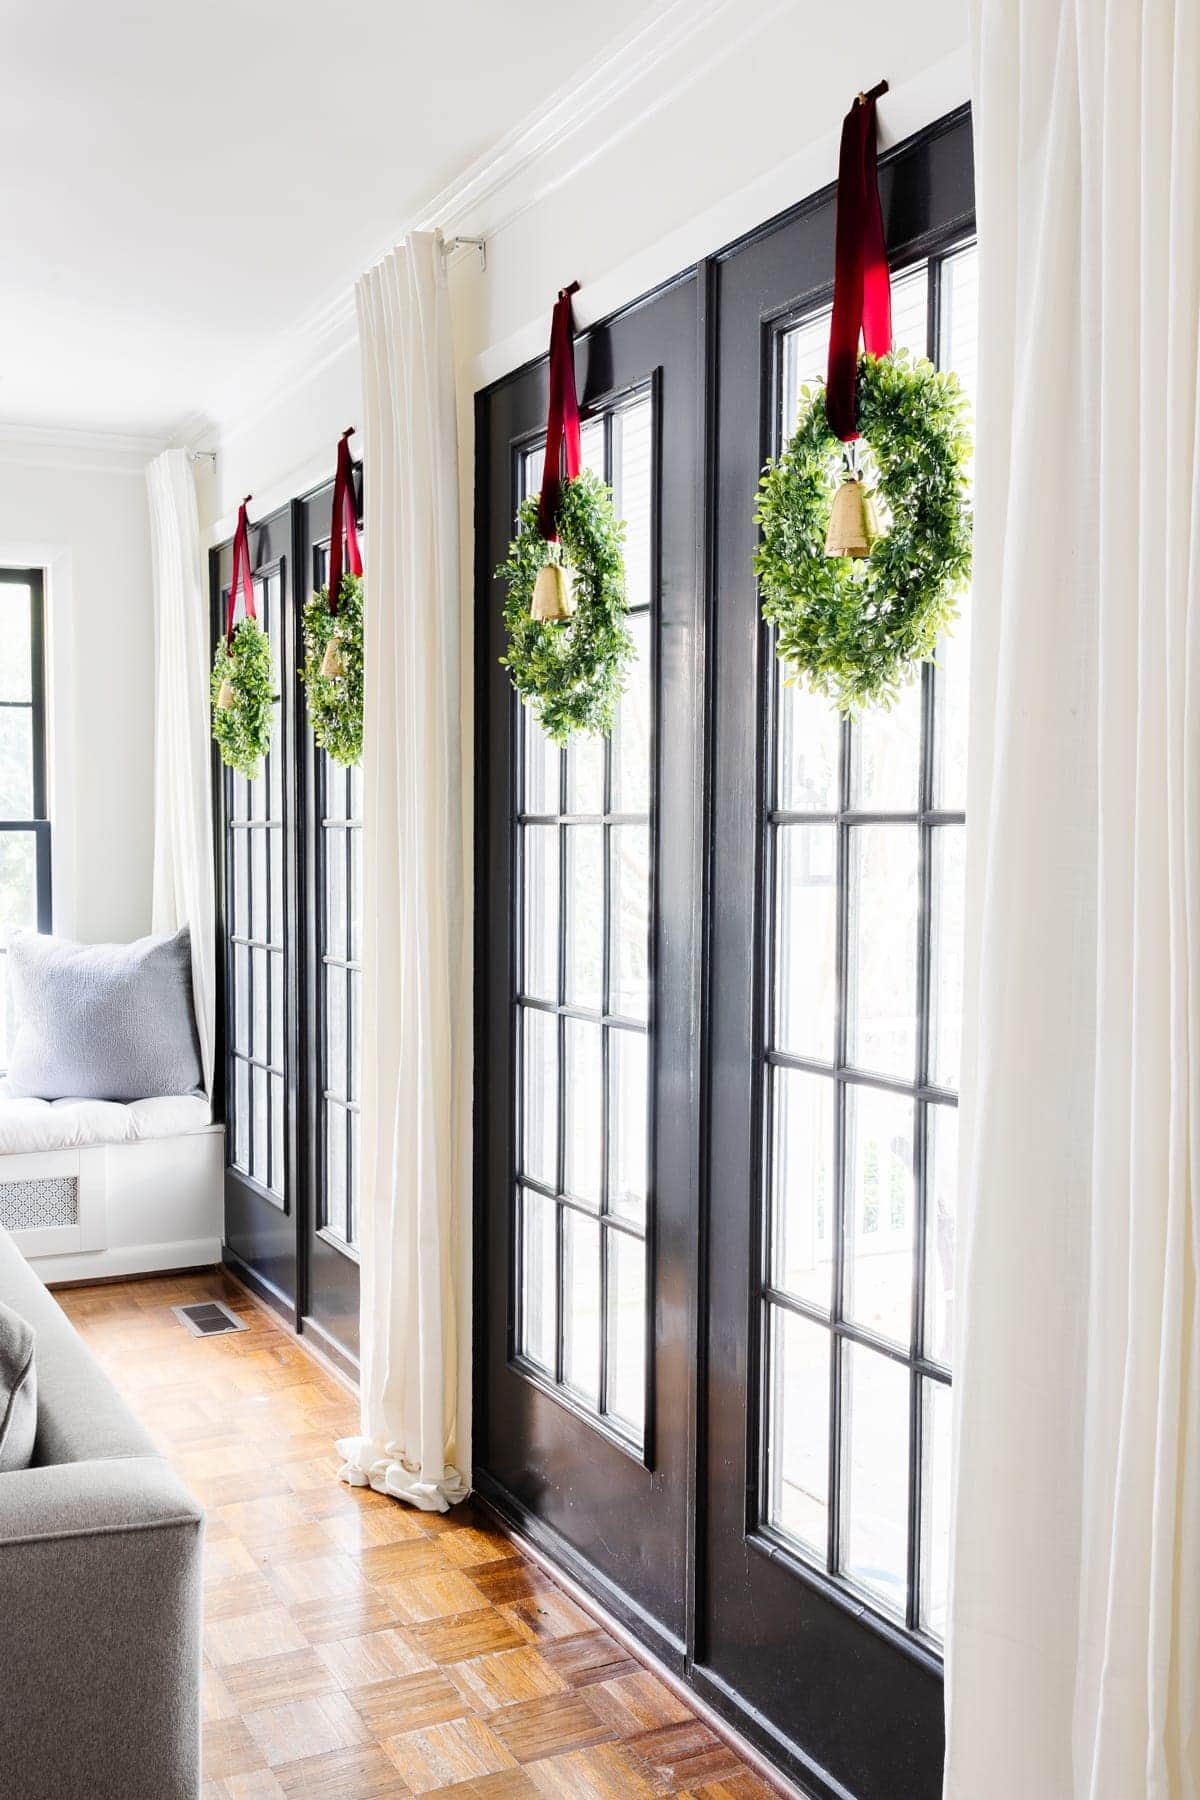 Christmas wreaths hanging on French door windows